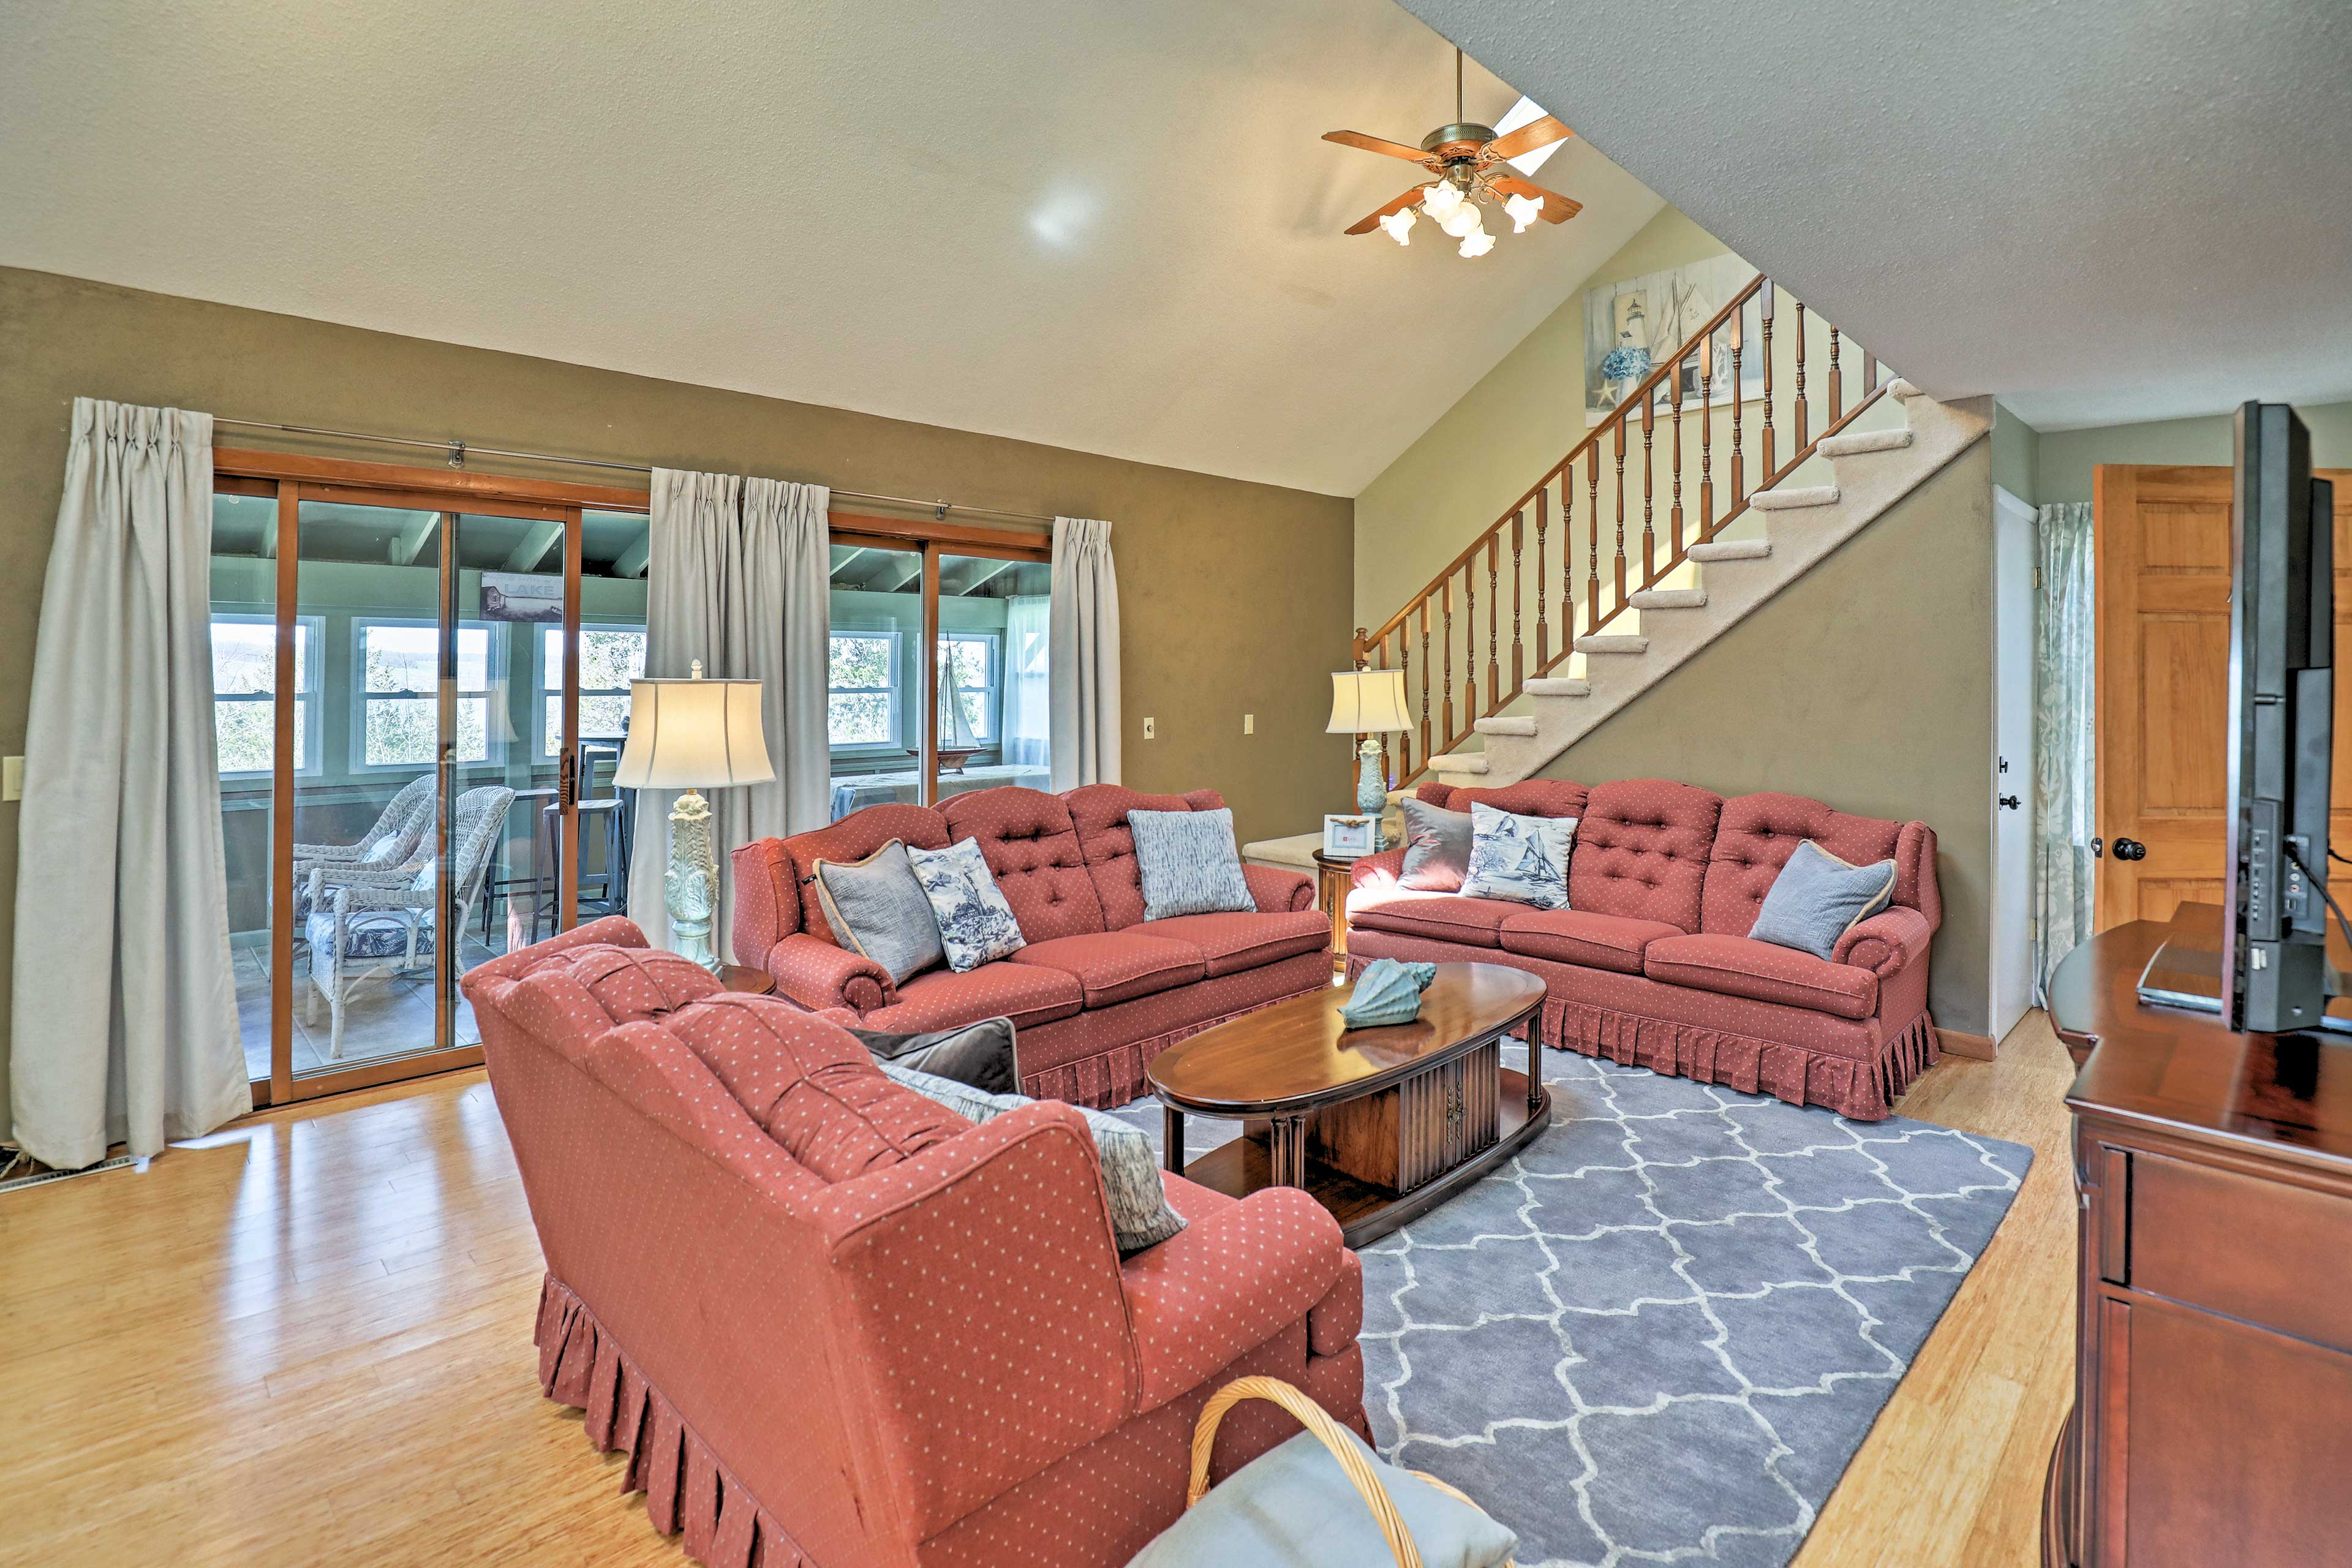 You'll have all the comforts of home plus a dock, fire pit, 3 kayaks and more.